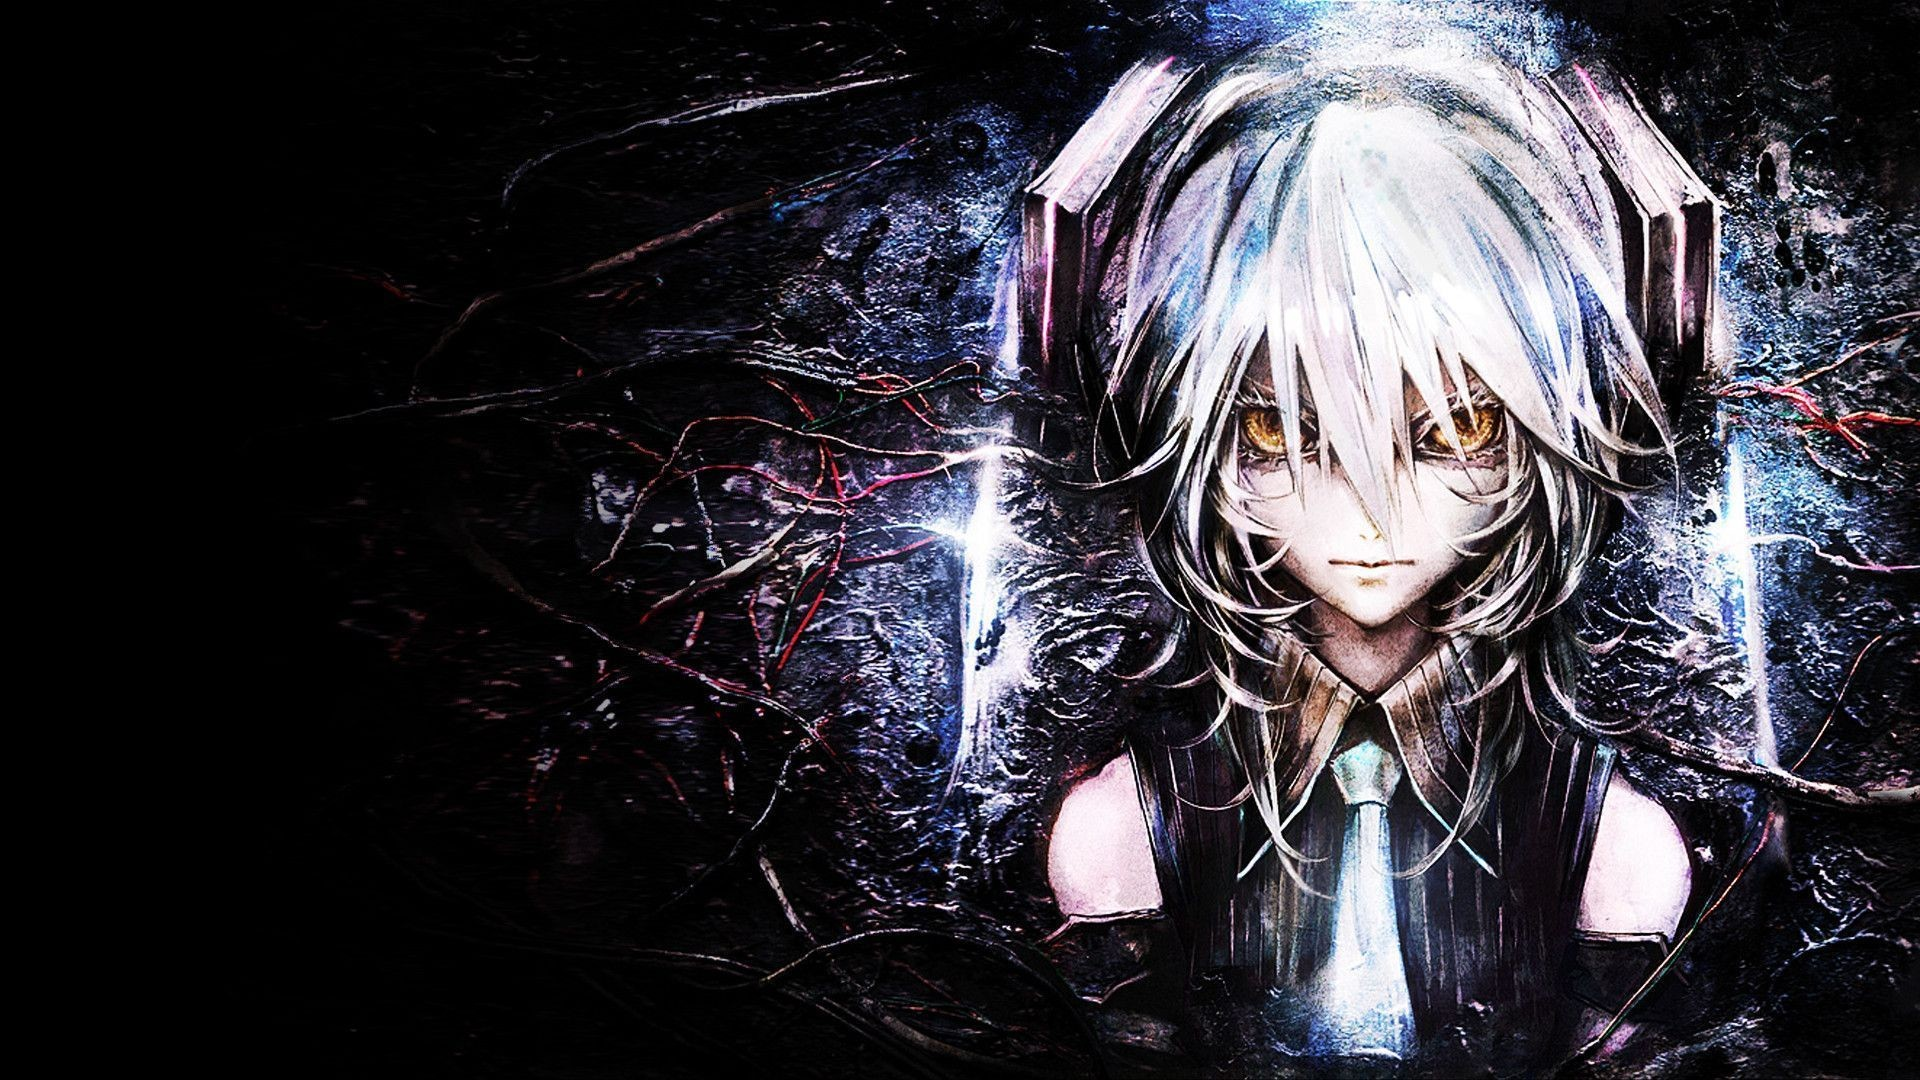 Res: 1920x1080, ... Cool Anime HD Wallpapers Group 79